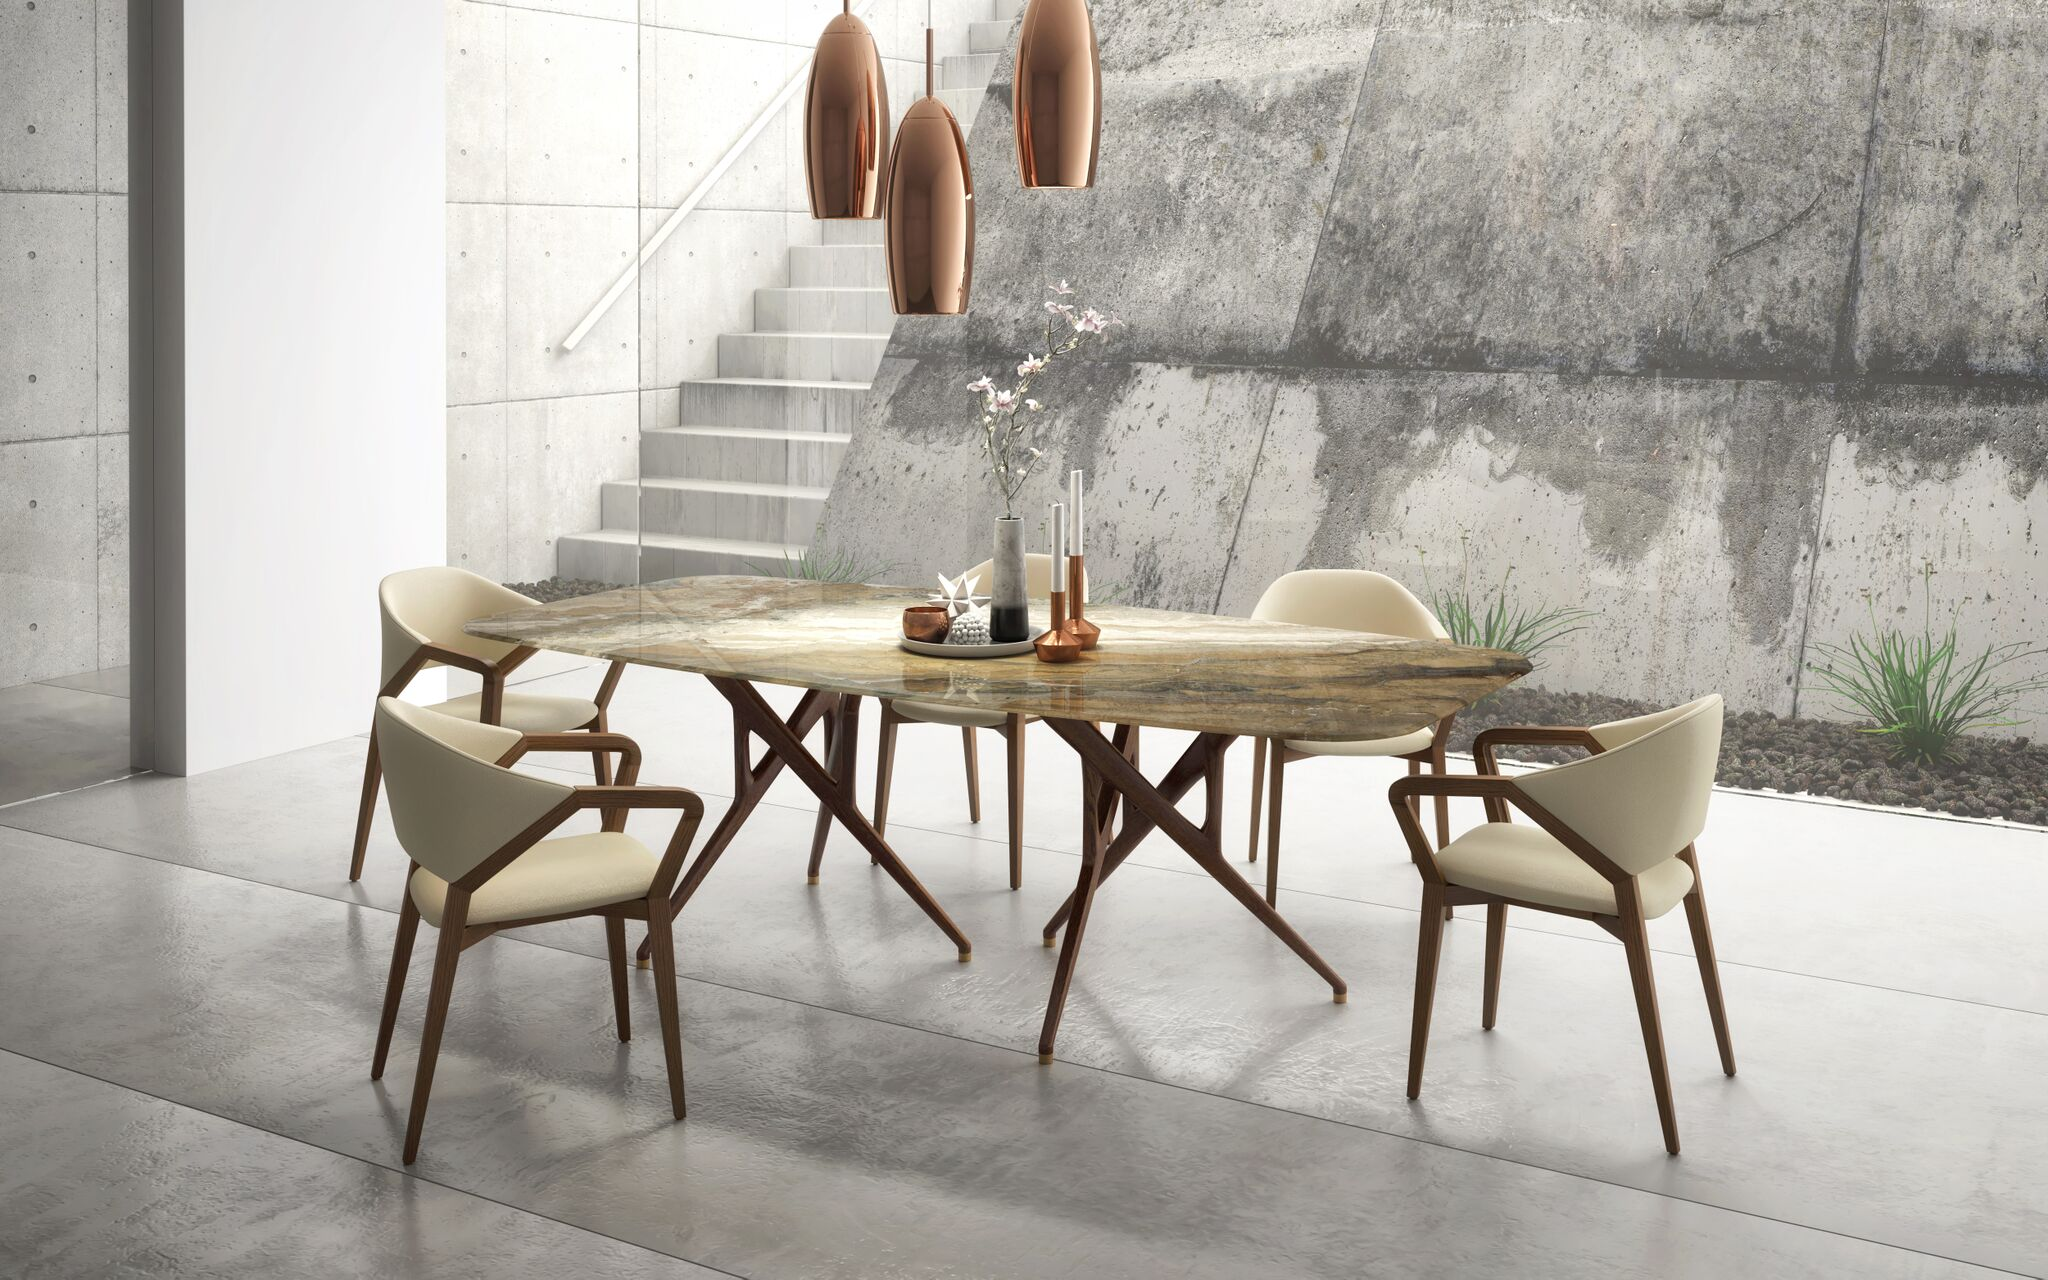 SAM Rafa Stone + Milan chair + orion lig